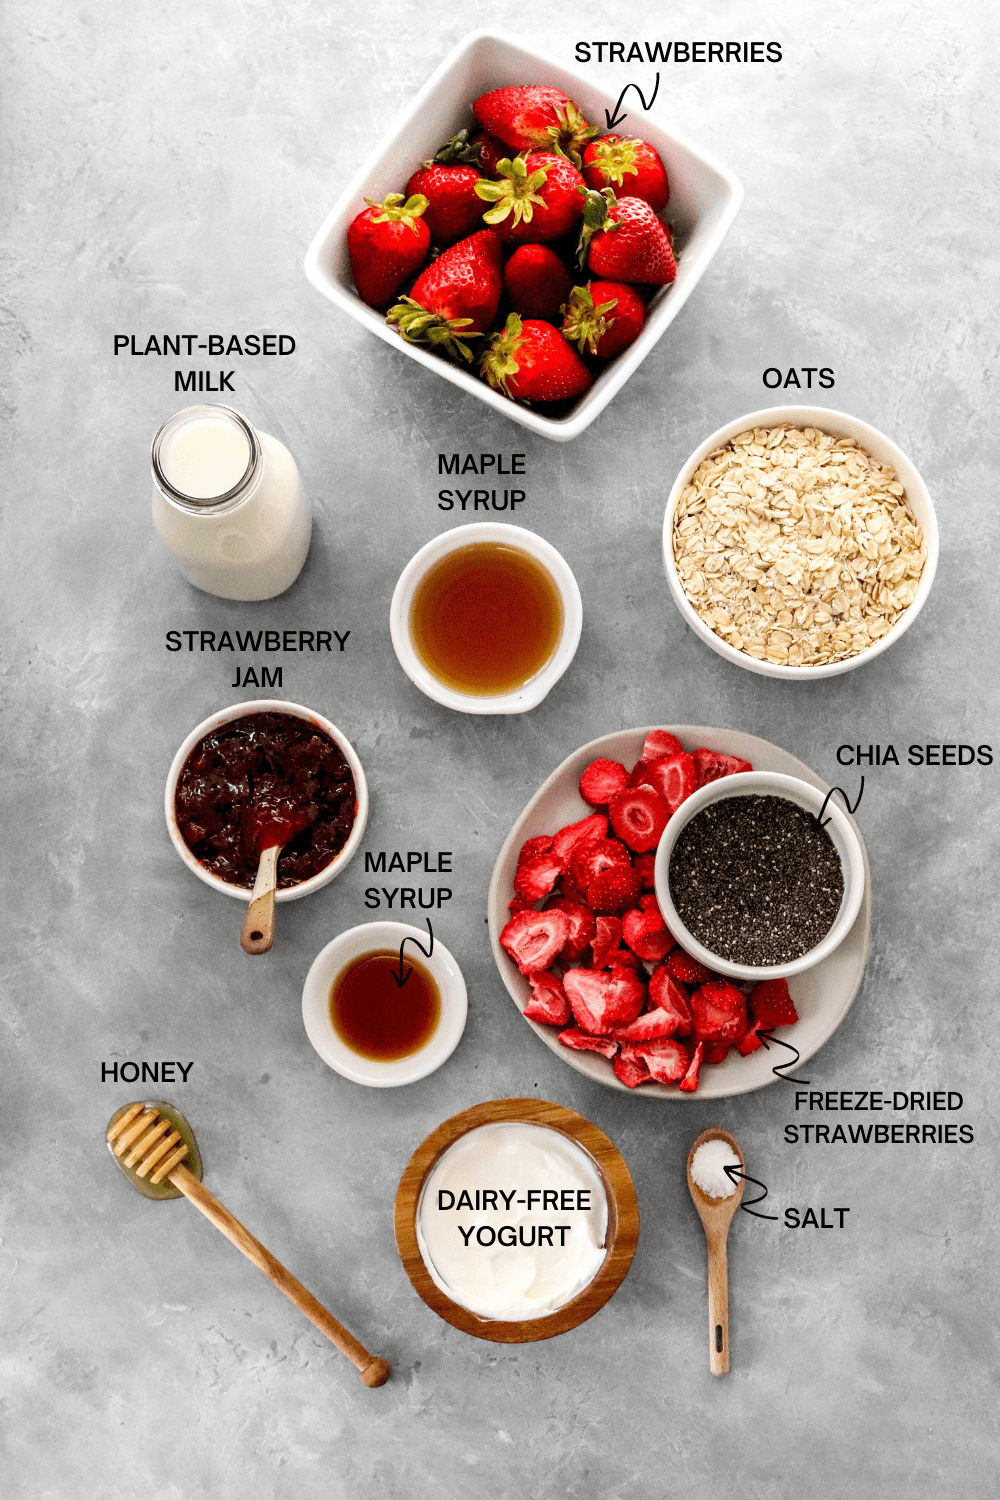 Square white dish filled with strawberries with a bowl of oats, glass of milk, maple syrup, bowl of jam, plate of dried fruits and chis seeds and a bowl of Greek yogurt in front of it on a gray surface.